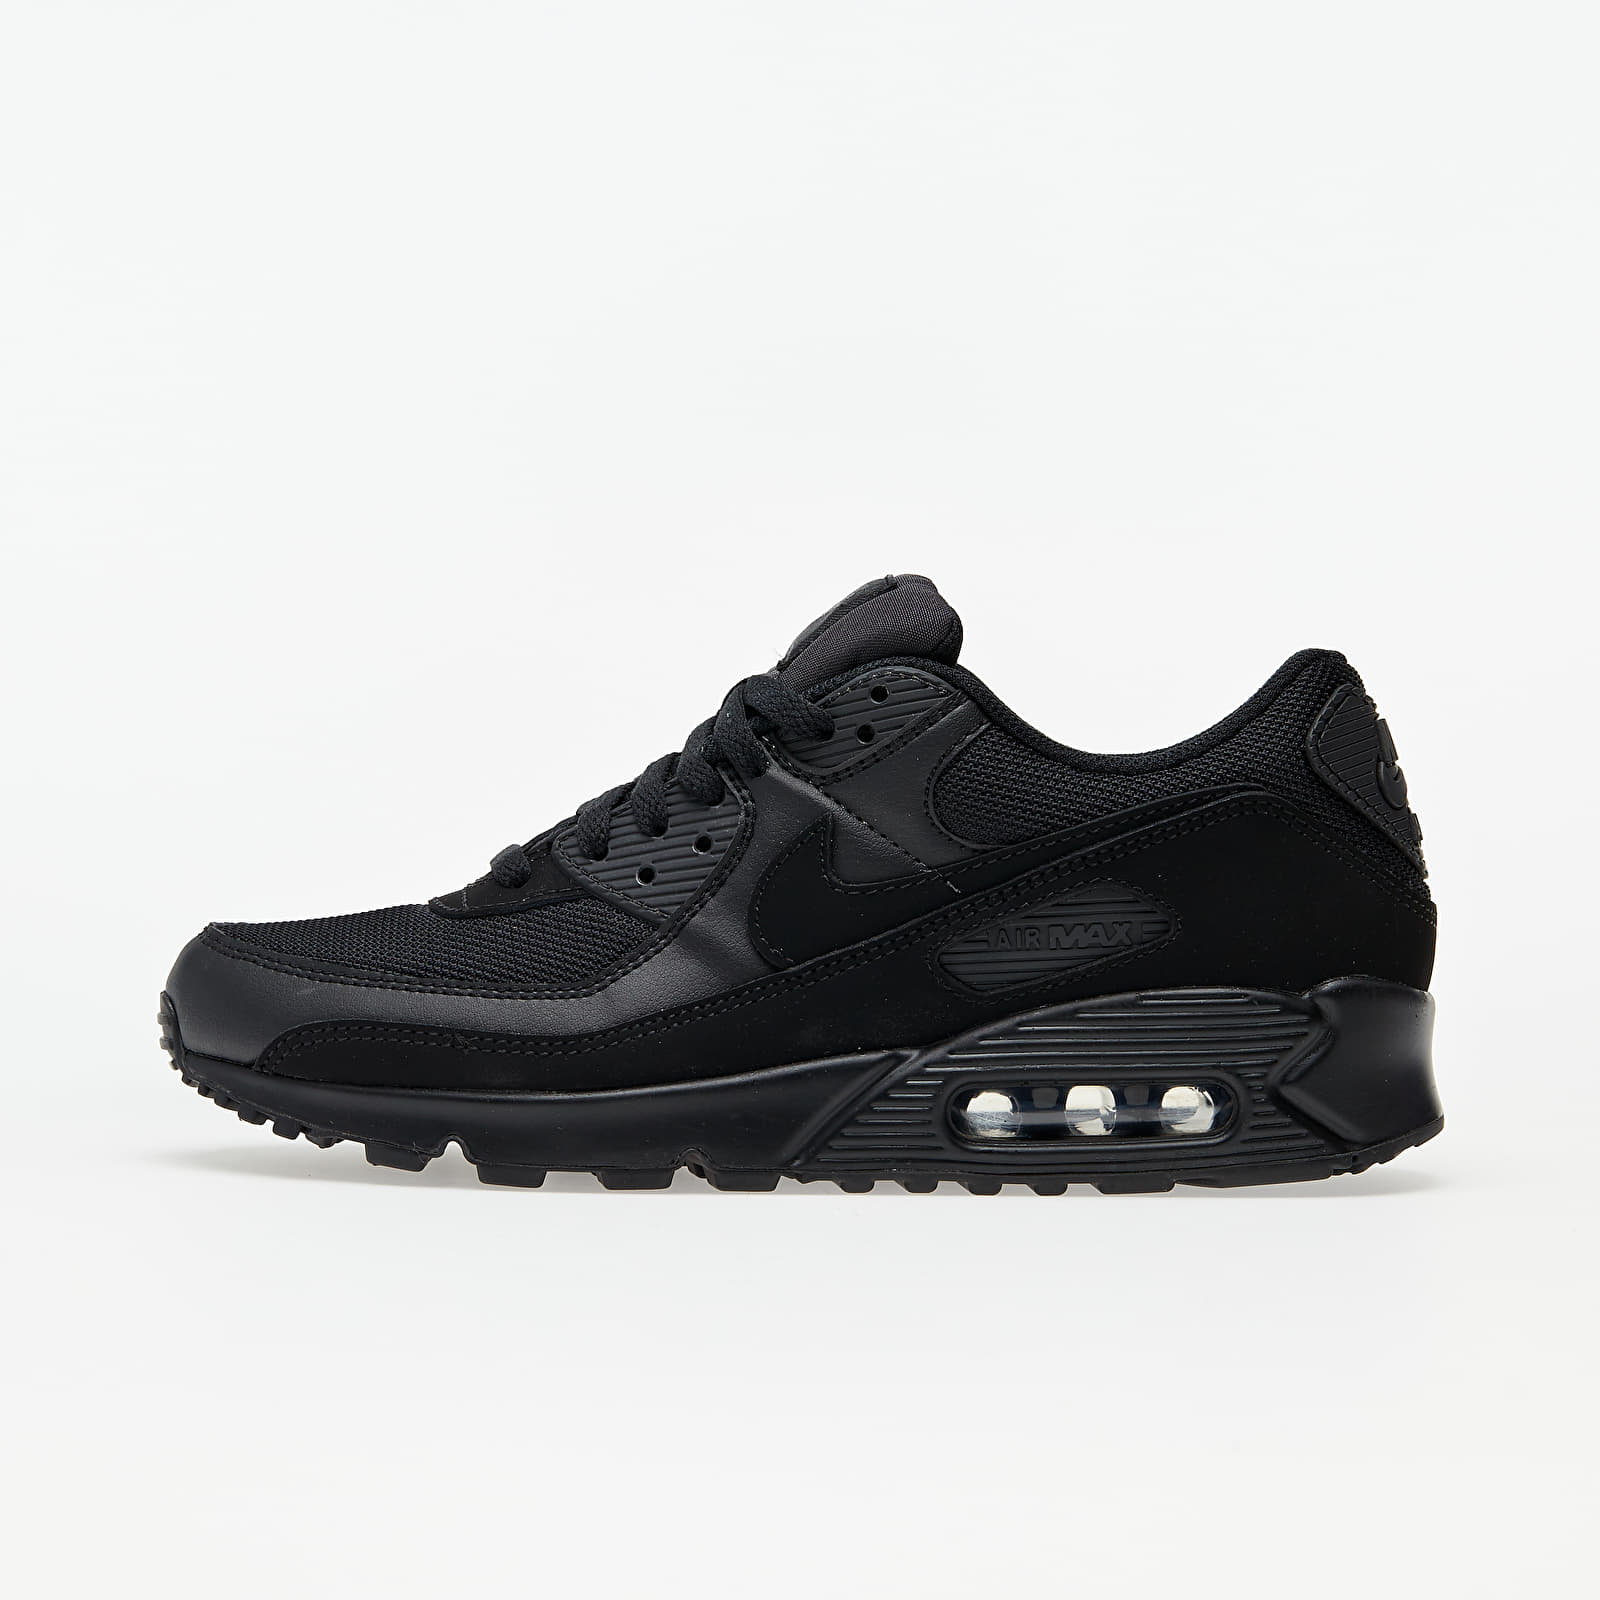 Nike Air Max 90 Black/ Black-Black-White EUR 41